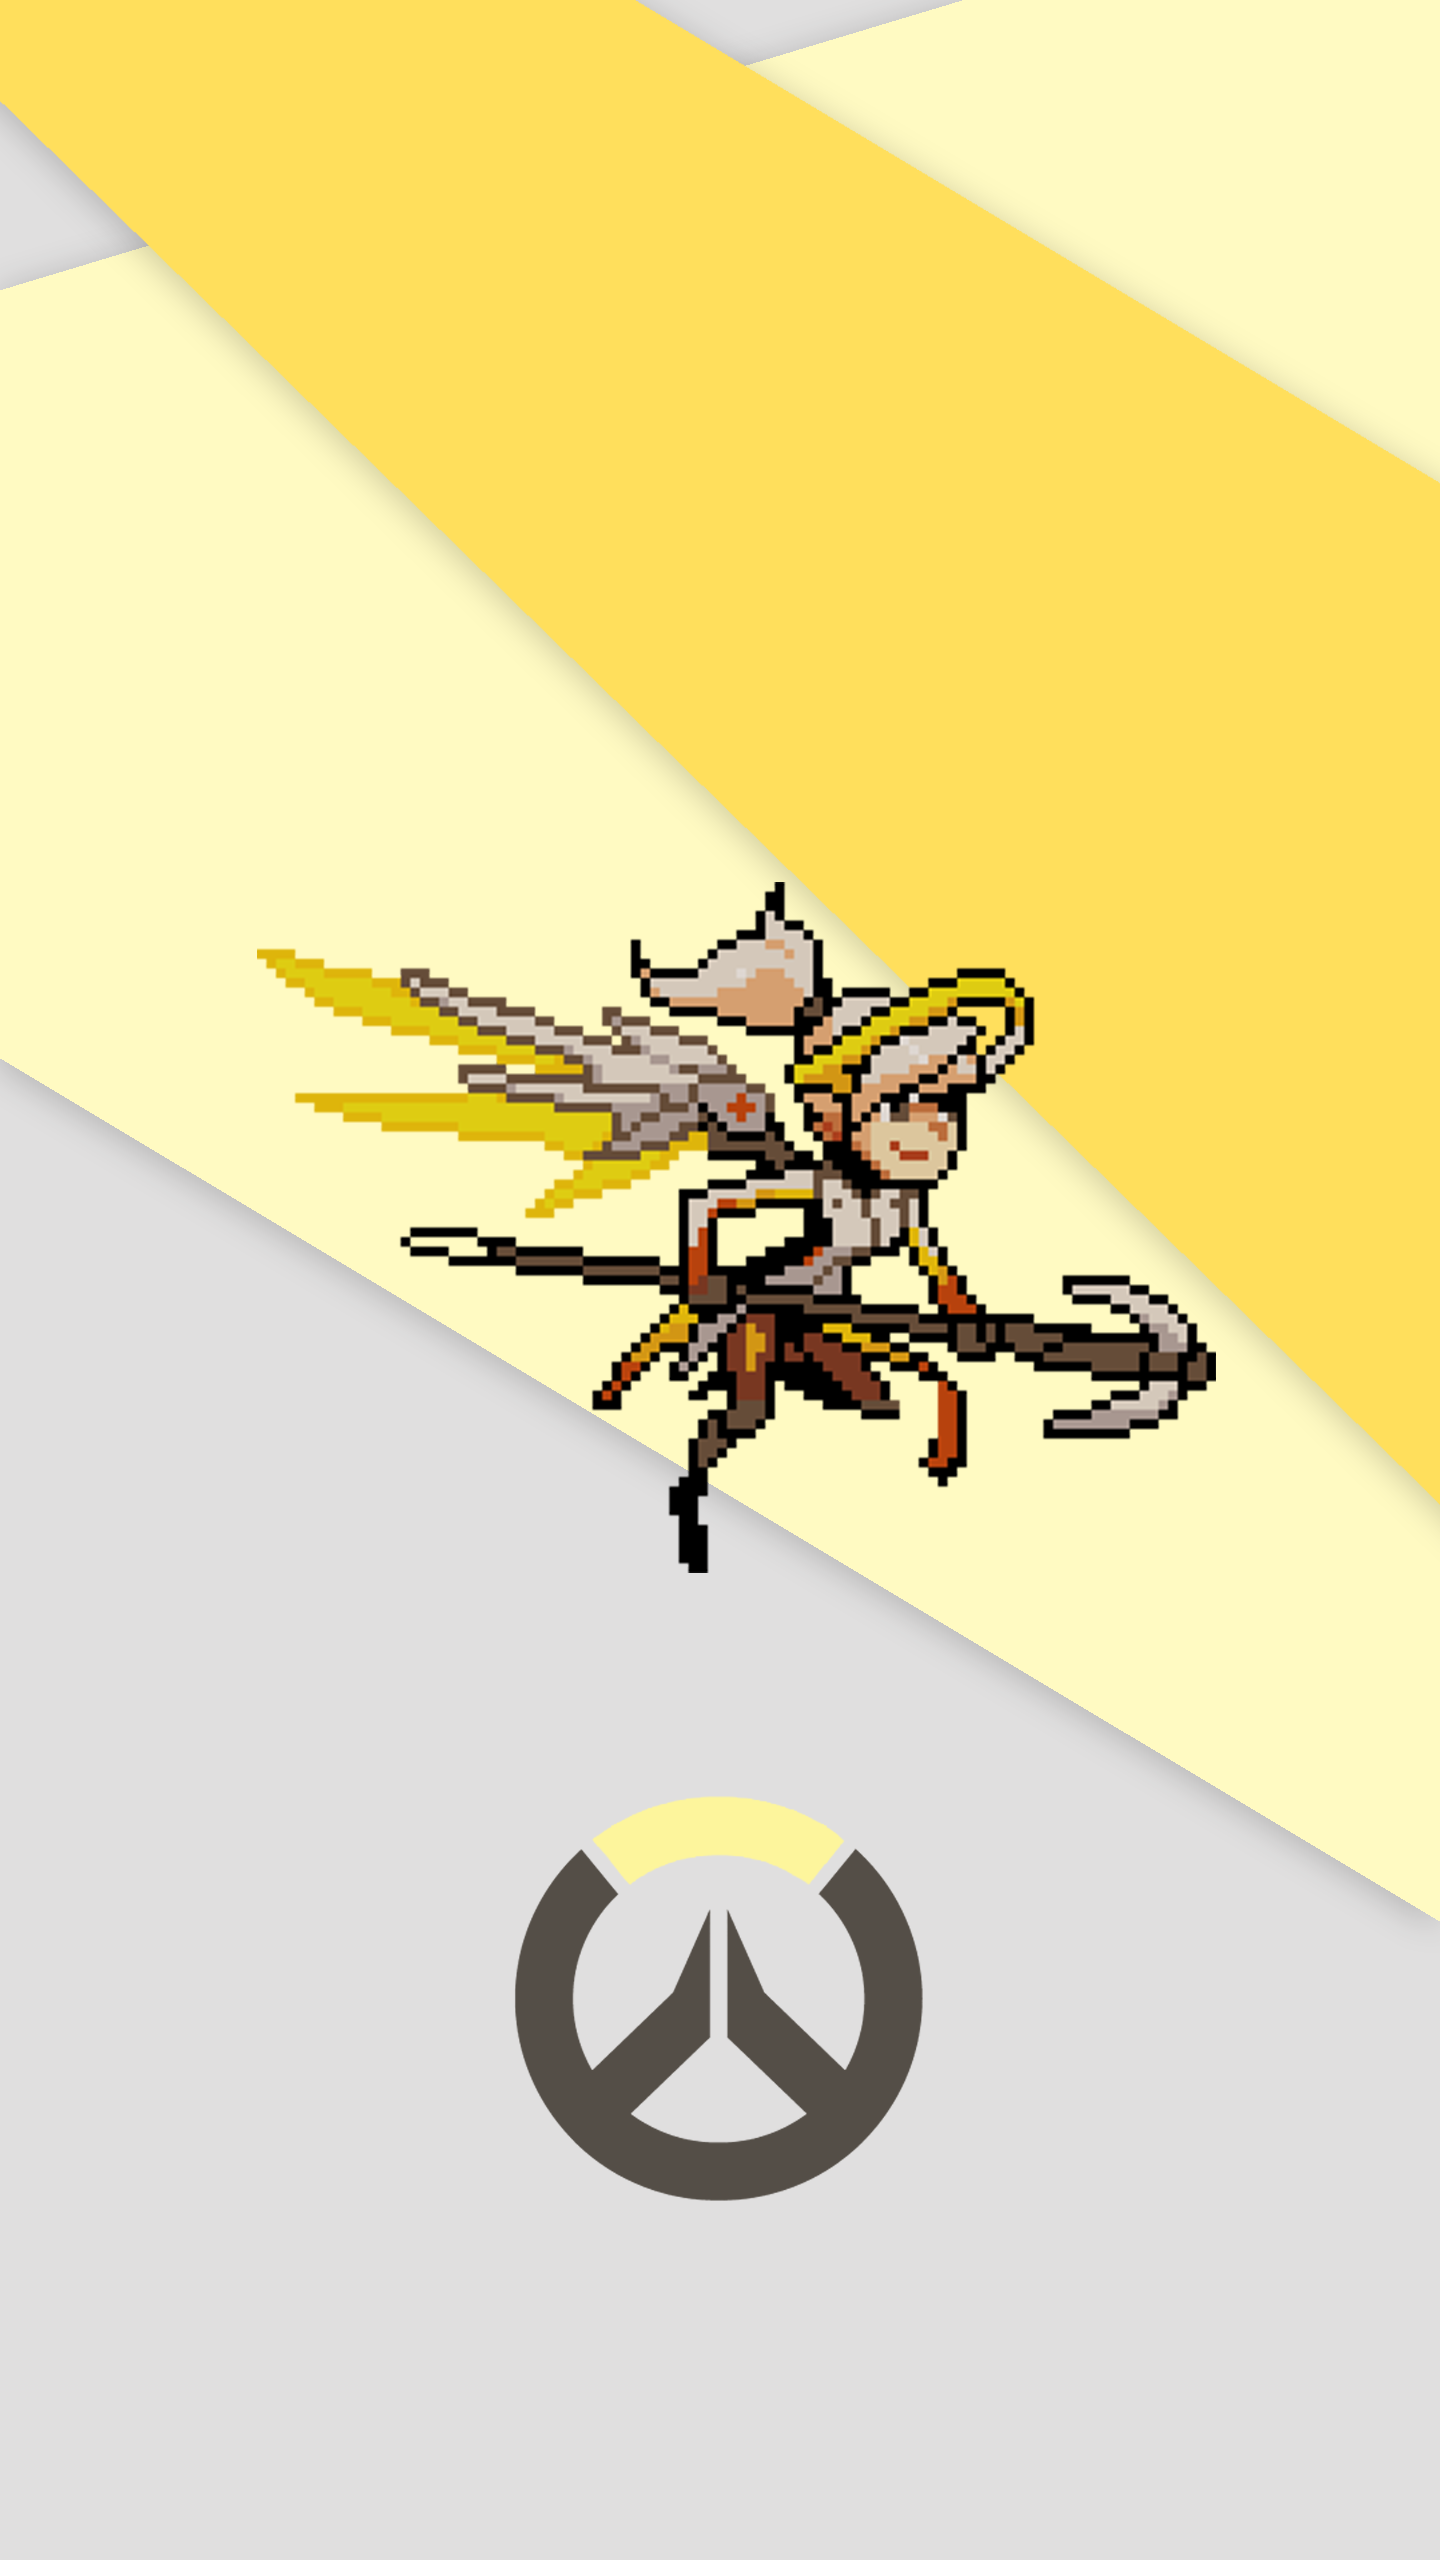 Overwatch mobile clipart clipart transparent download I made a material themed phone wallpaper for every hero, using the ... clipart transparent download